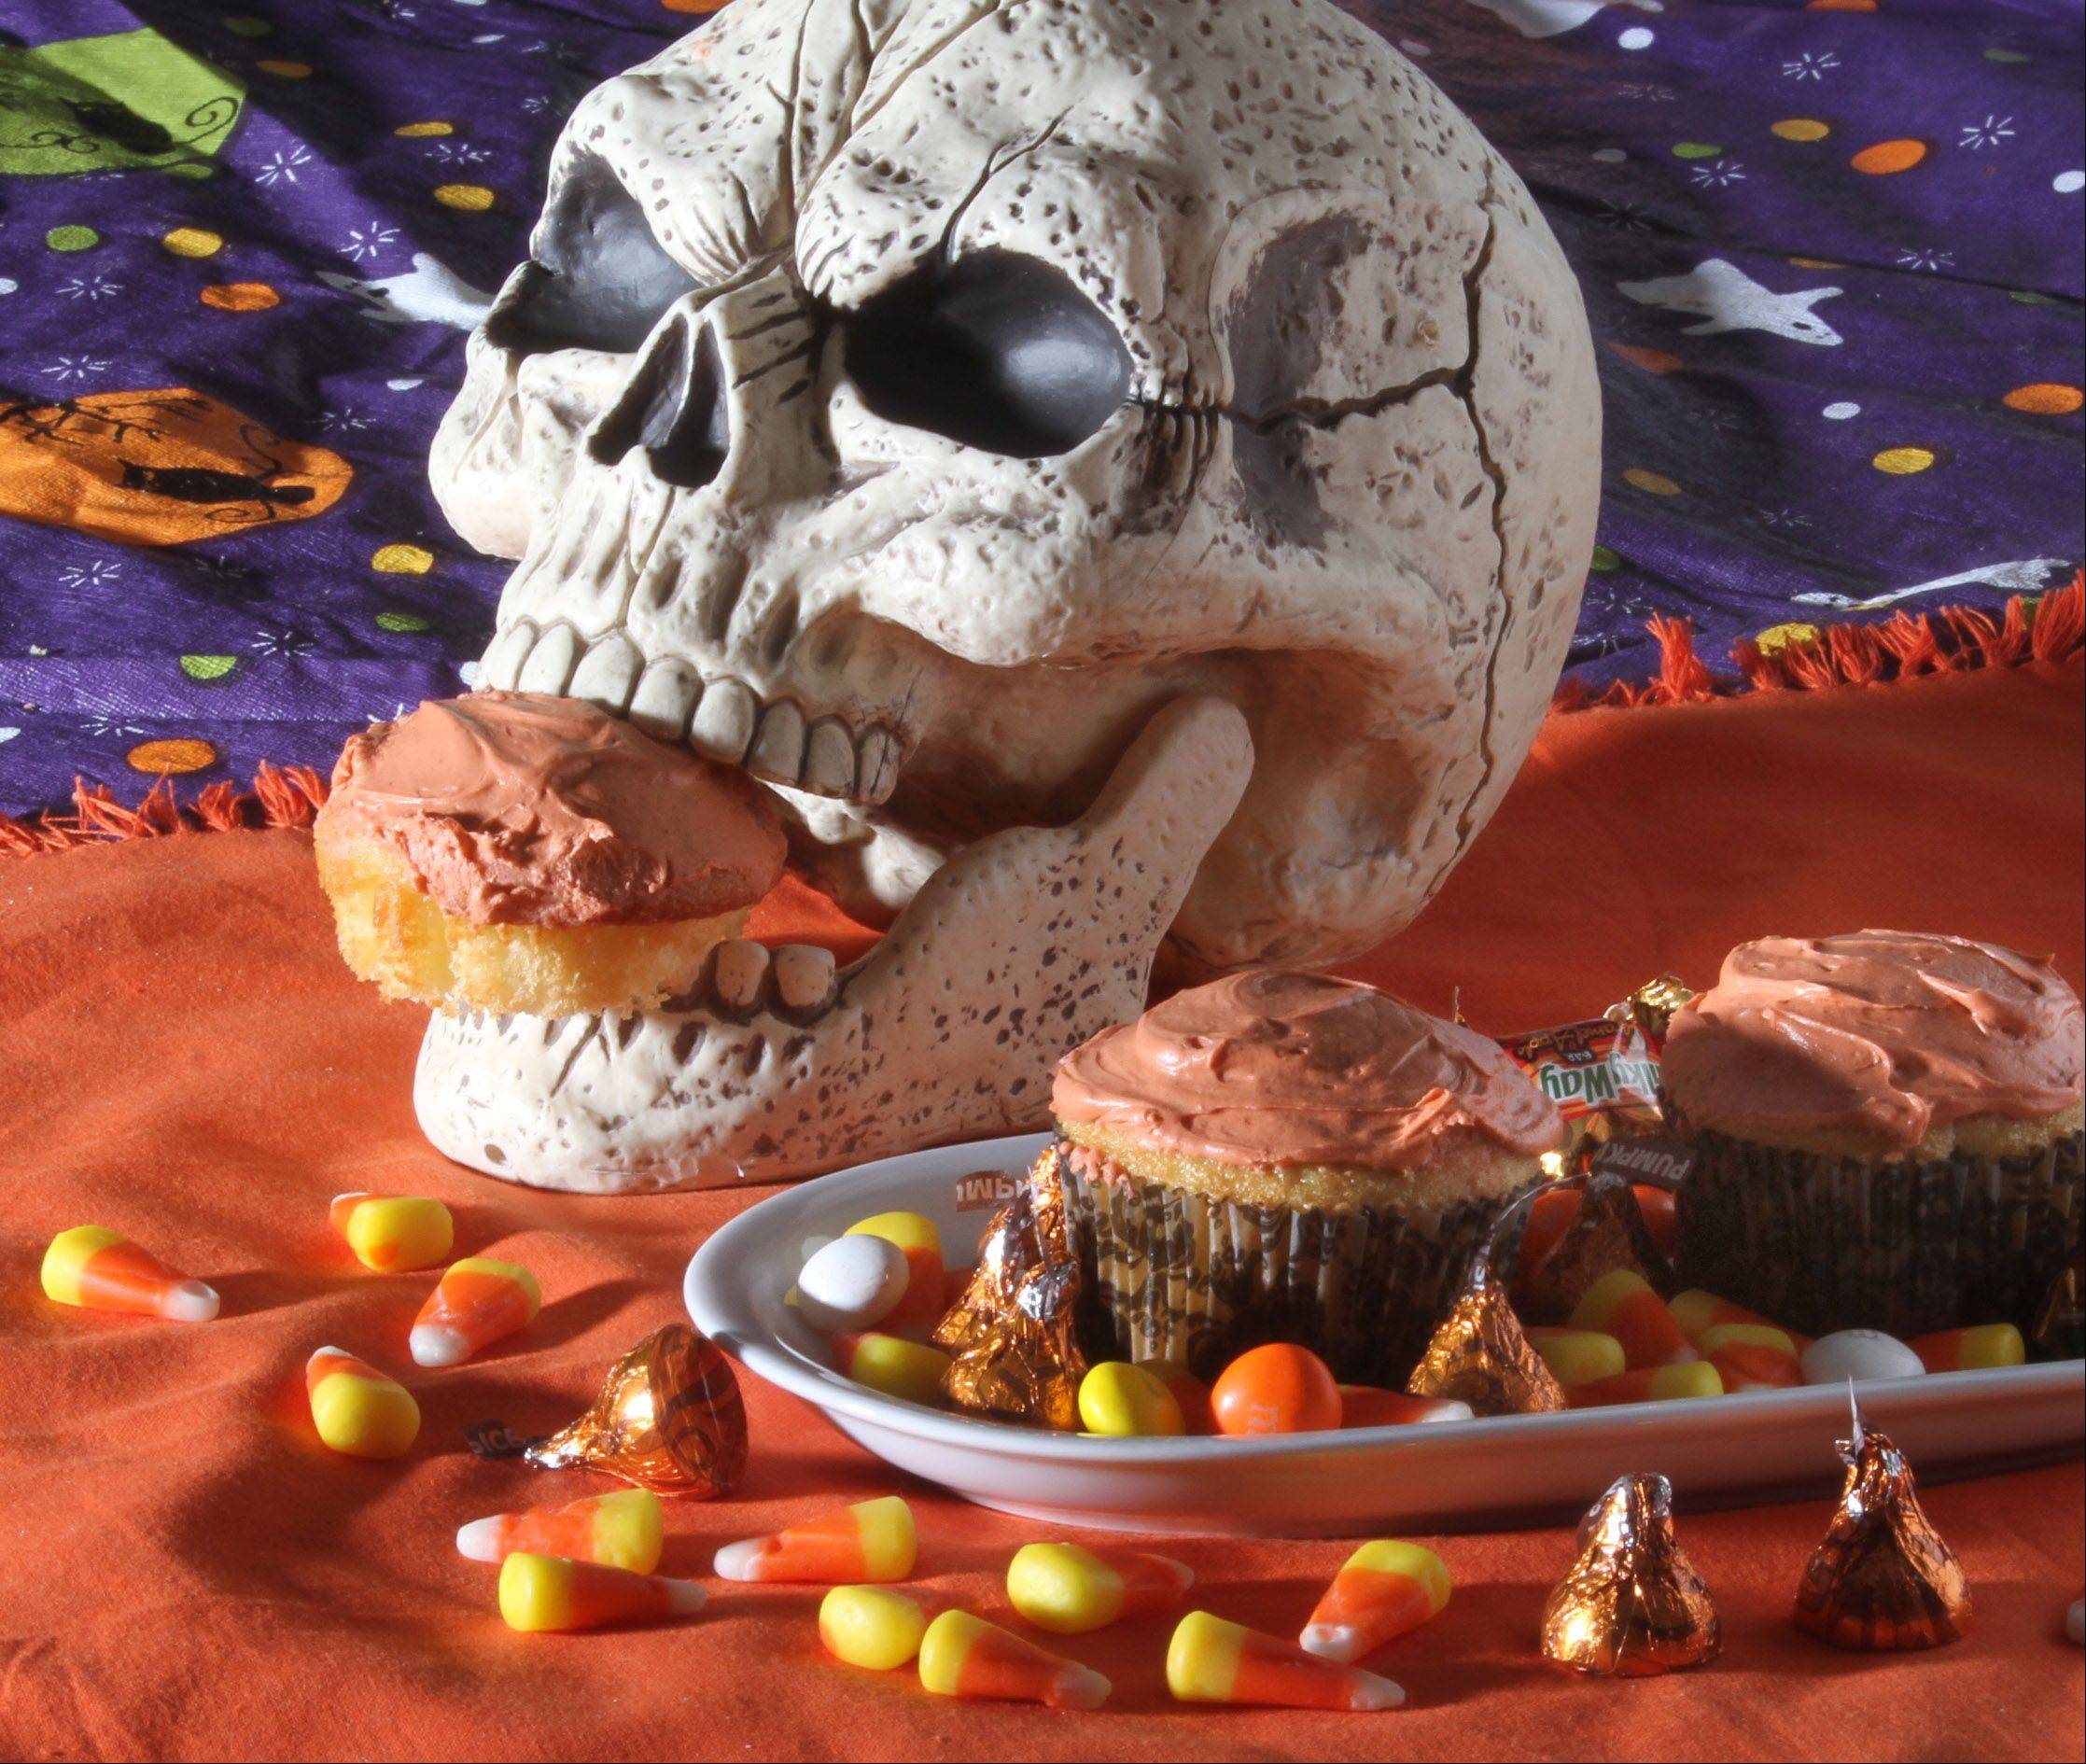 These Halloween cupcakes hold a sweet surprise: a pumpkin spice Hershey's Kiss.